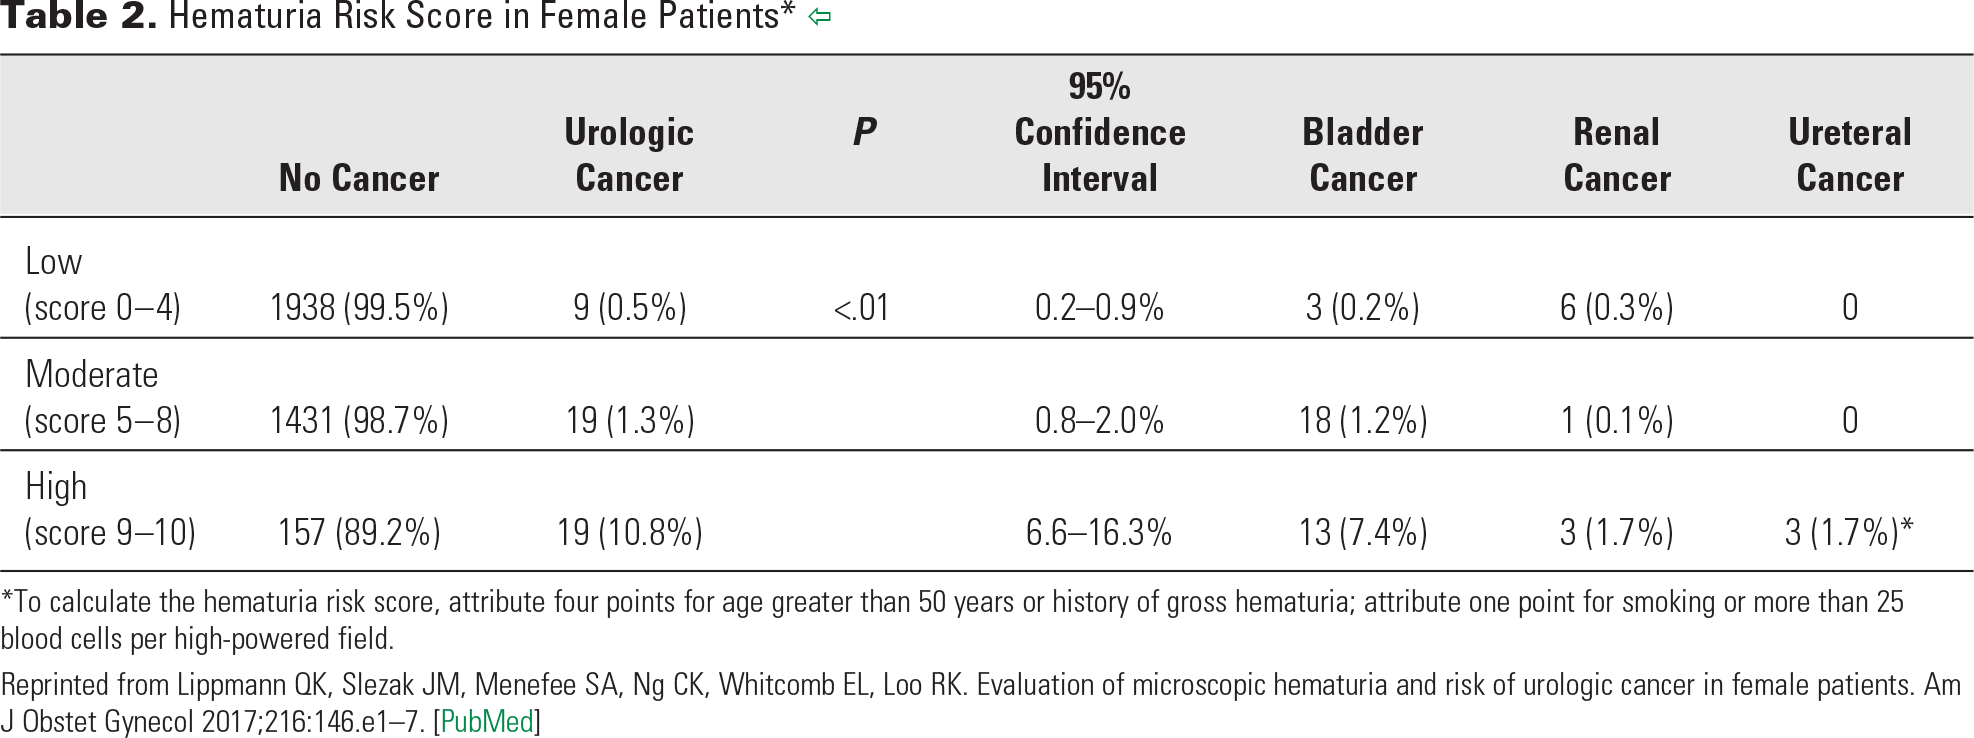 Table 2. Hematuria Risk Score in Female Patients*